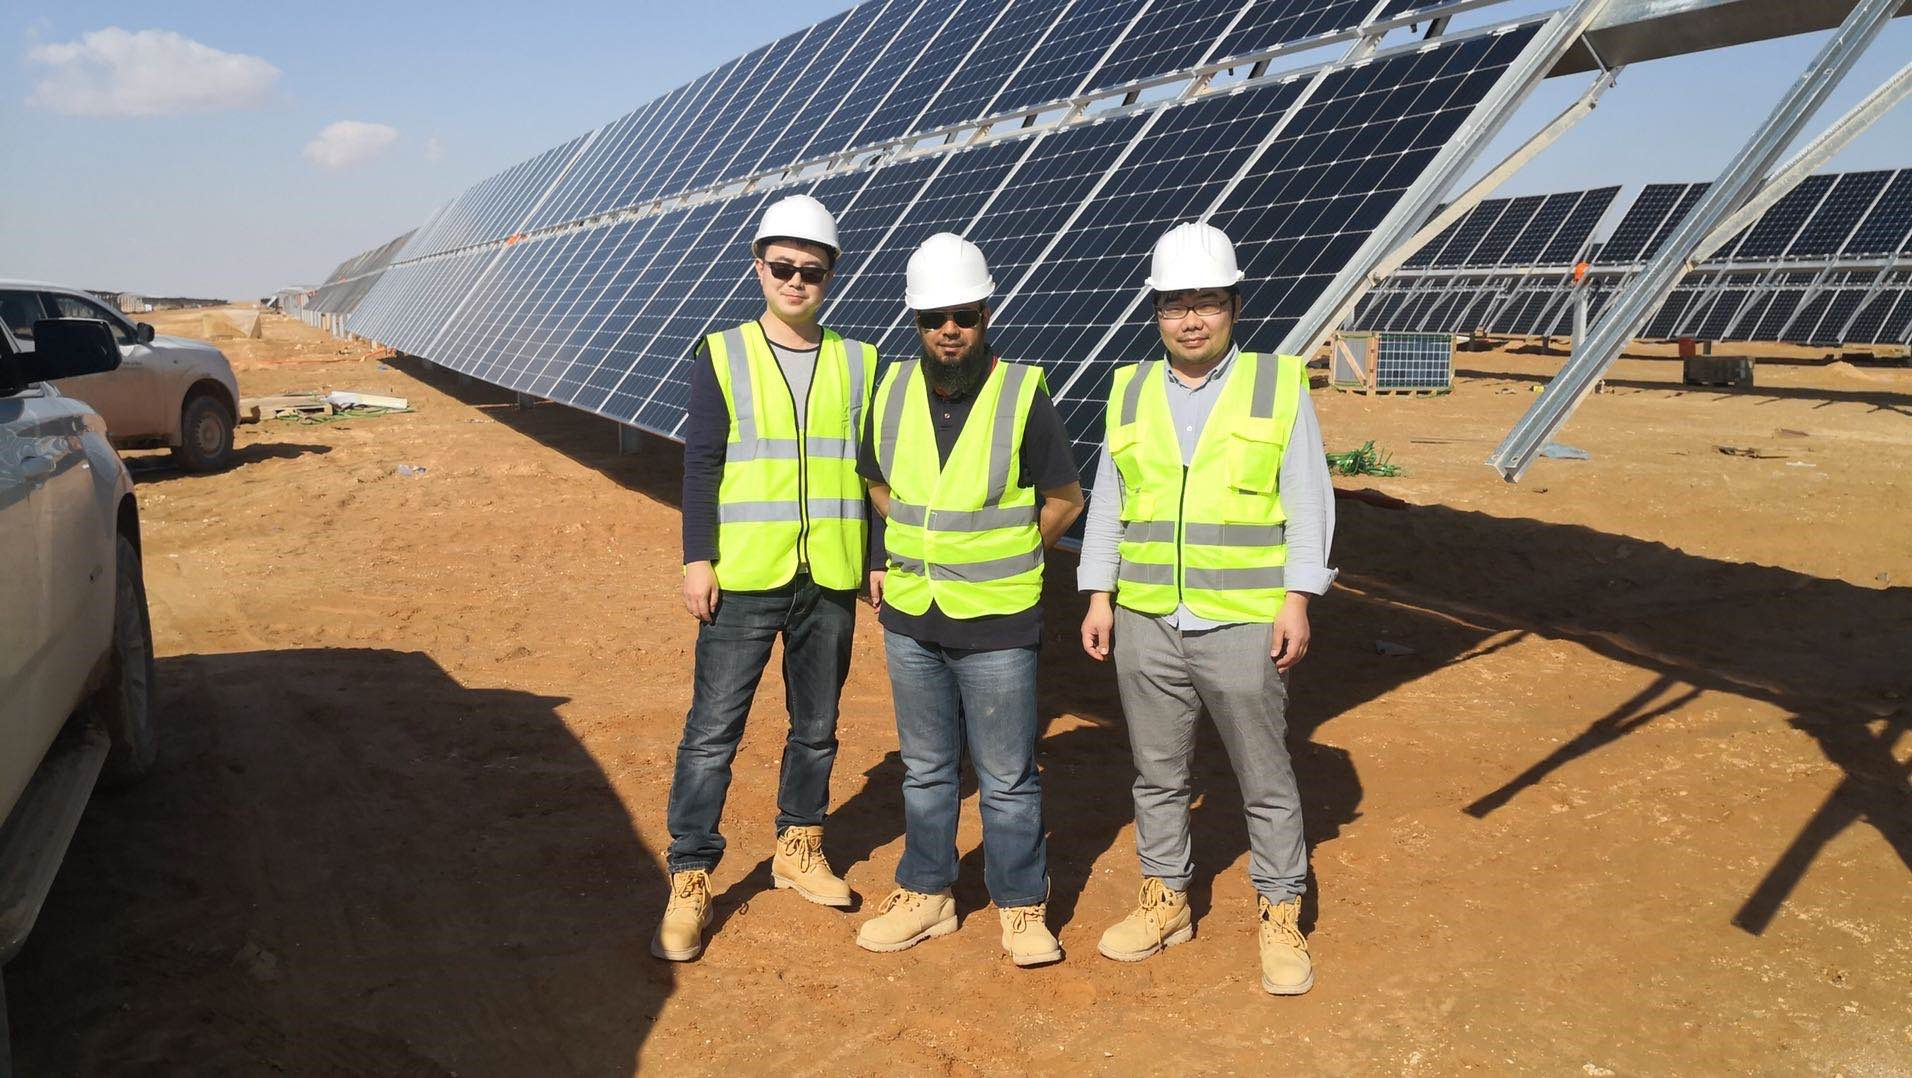 Exclusively powered by Jolywood modules, the Oman project is considered to be the largest single N-type PV power plant in the world. Image credit: Jolywood